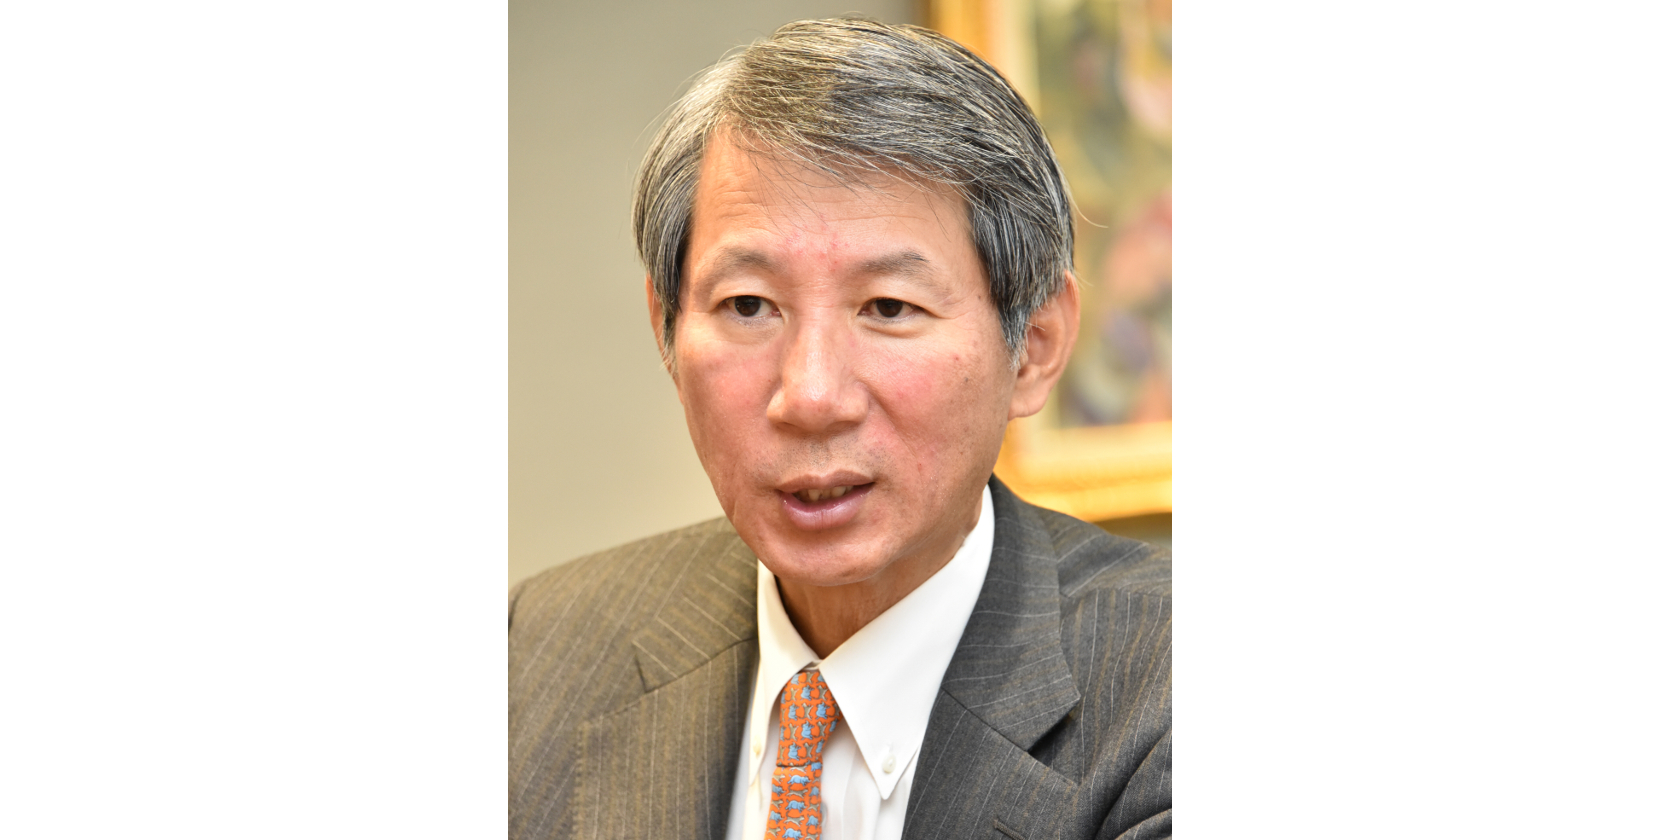 Interview: Chiyoda CEO Discusses New Company Structure, Aims for Upcoming Fiscal Year